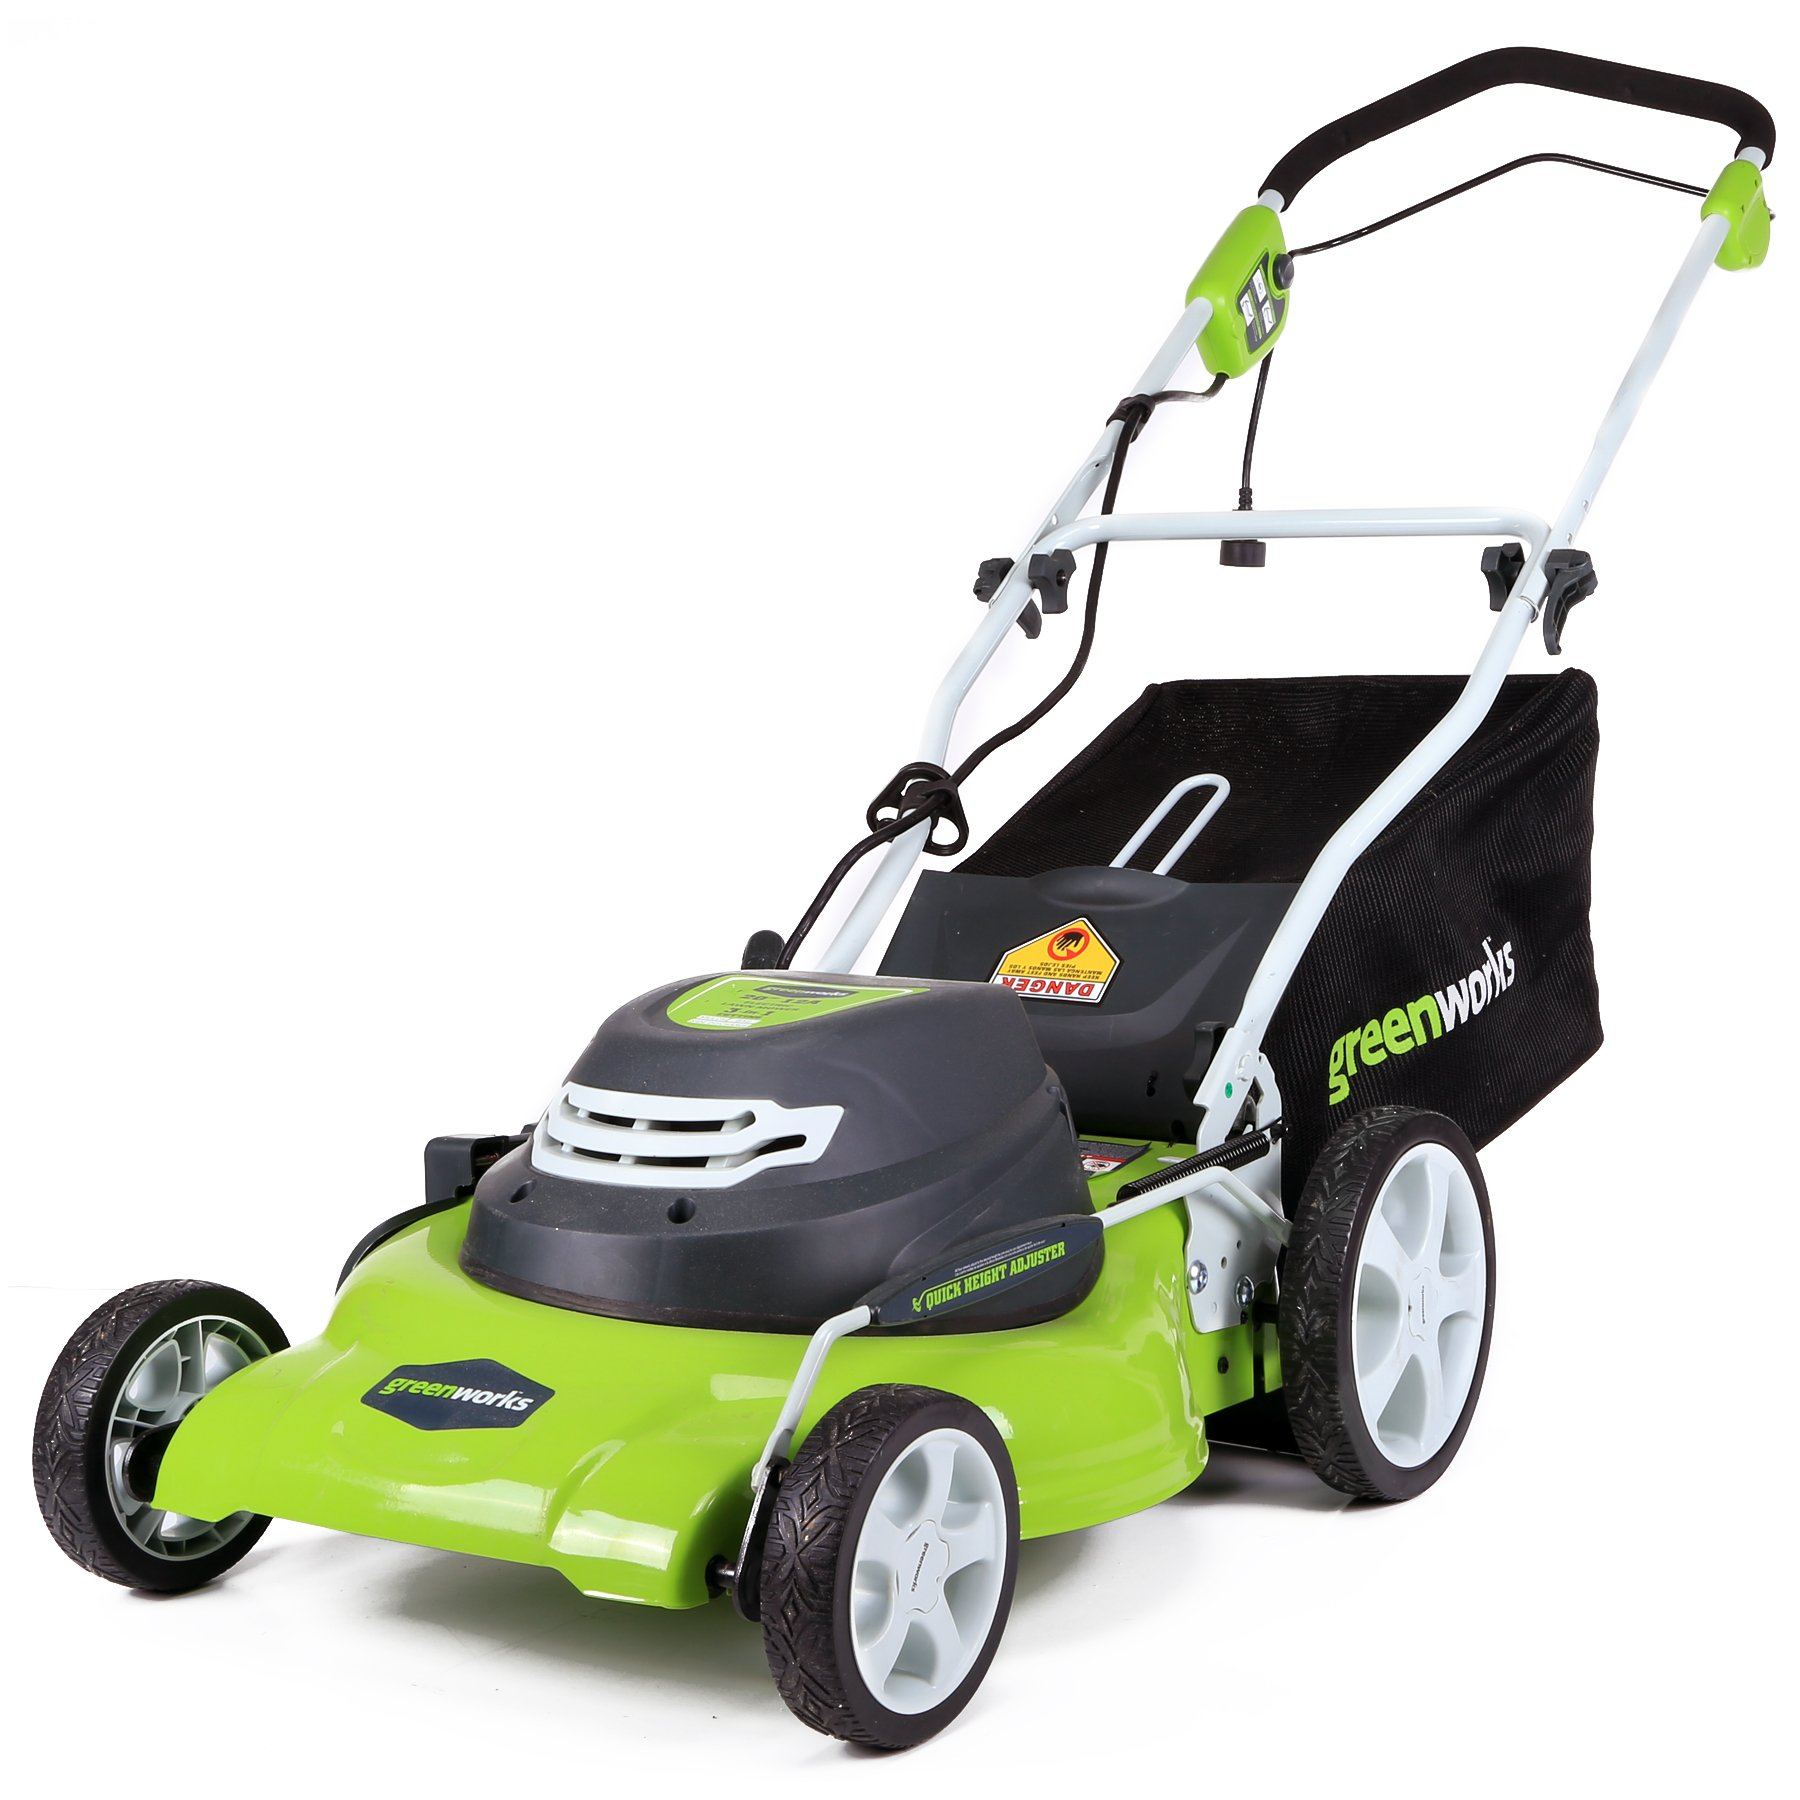 GreenWorks 20 Inch Corded Electric 25022